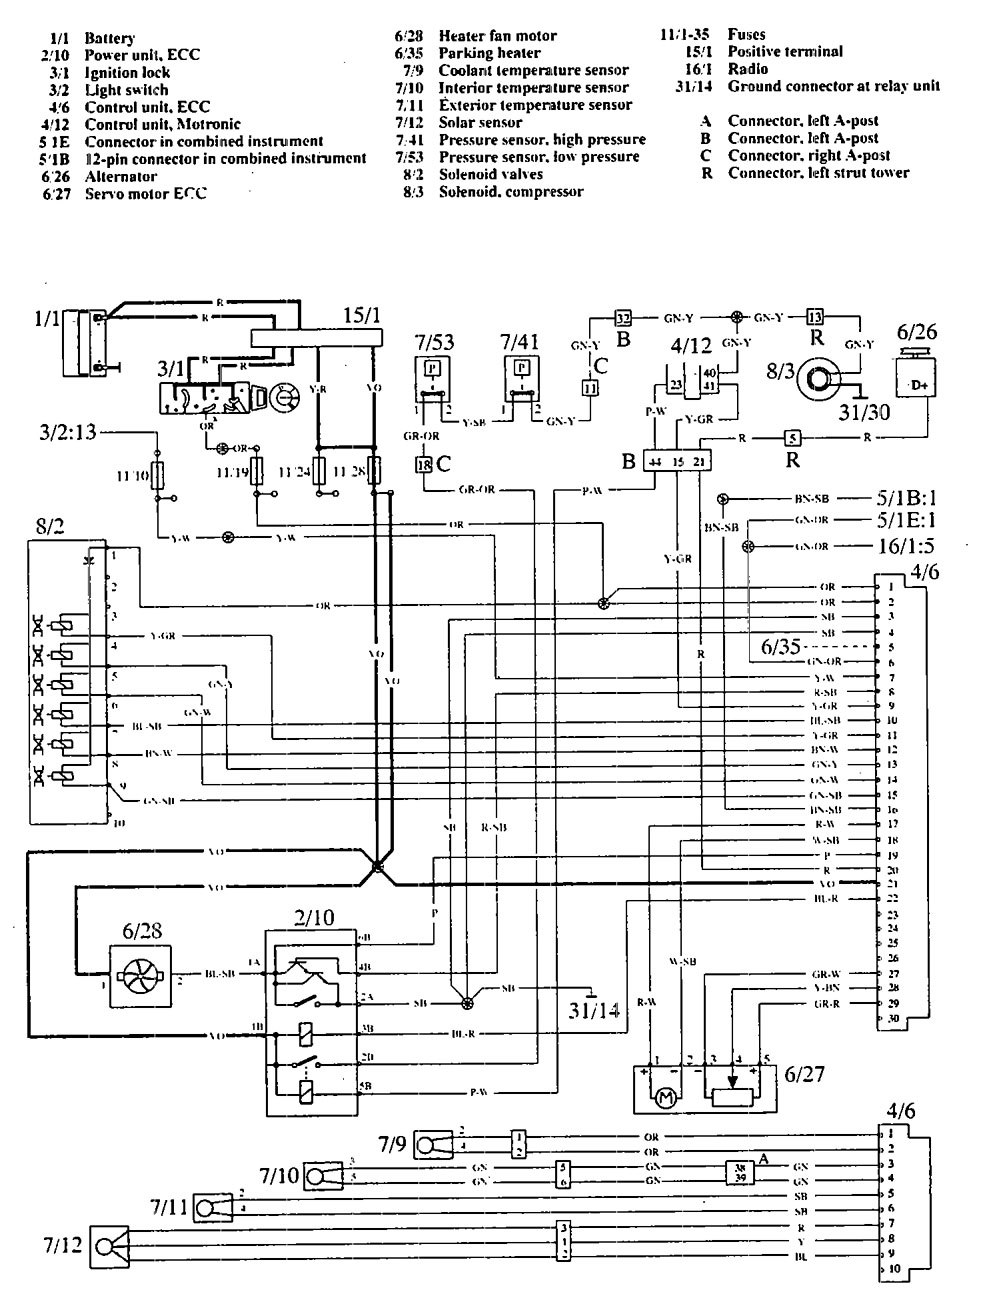 1992 mitsubishi 3000gt stereo wiring diagram volvo 960  1992 1994  wiring diagrams hvac controls  volvo 960  1992 1994  wiring